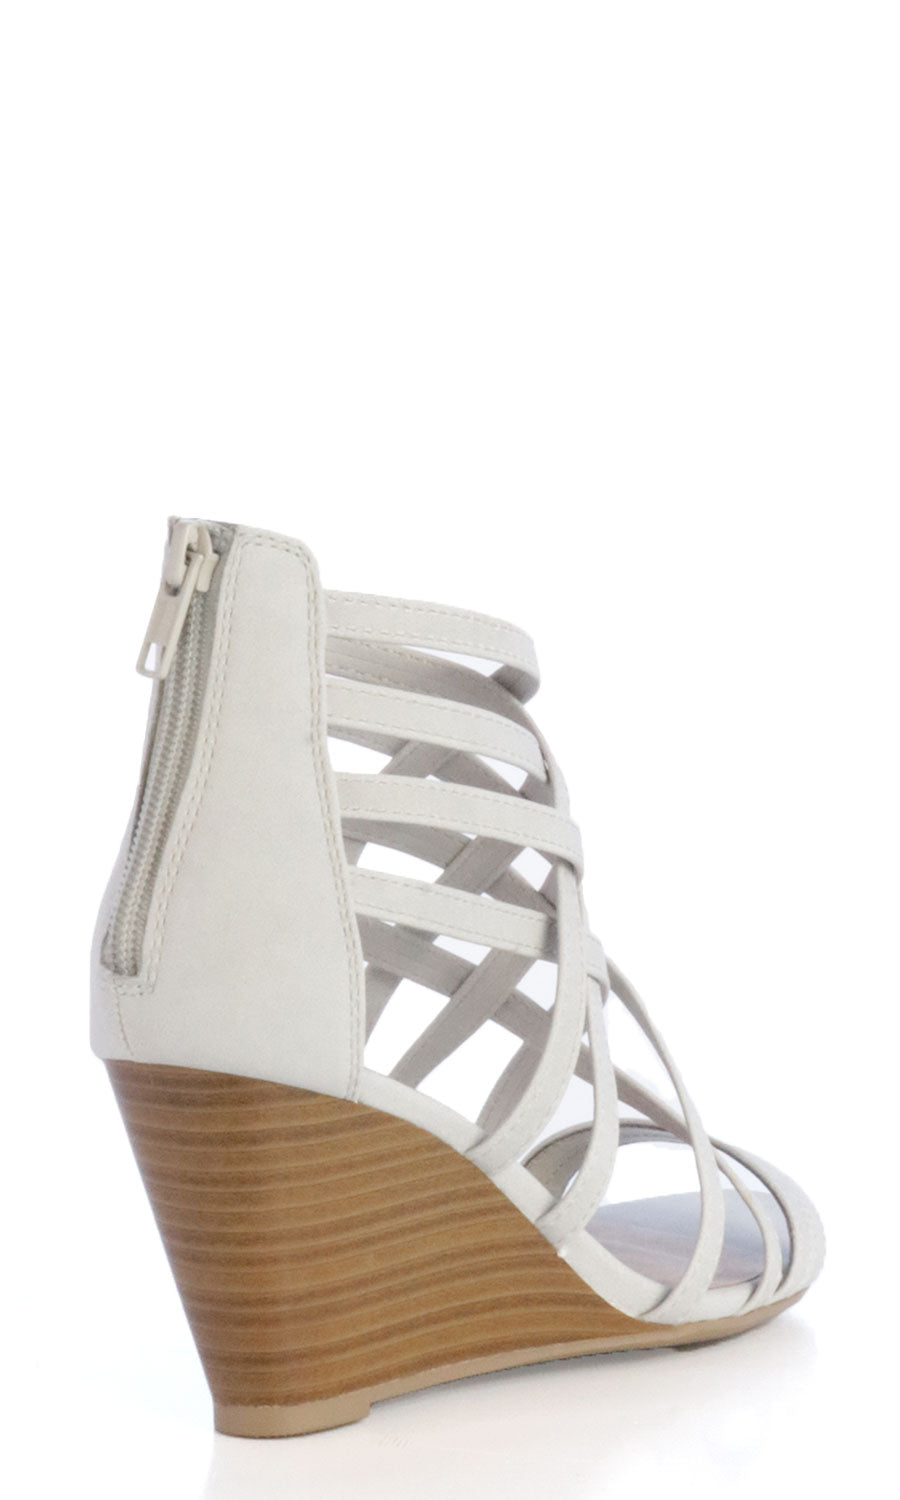 Women's Grey Strapped Wedges - Smith & Angie Boutique